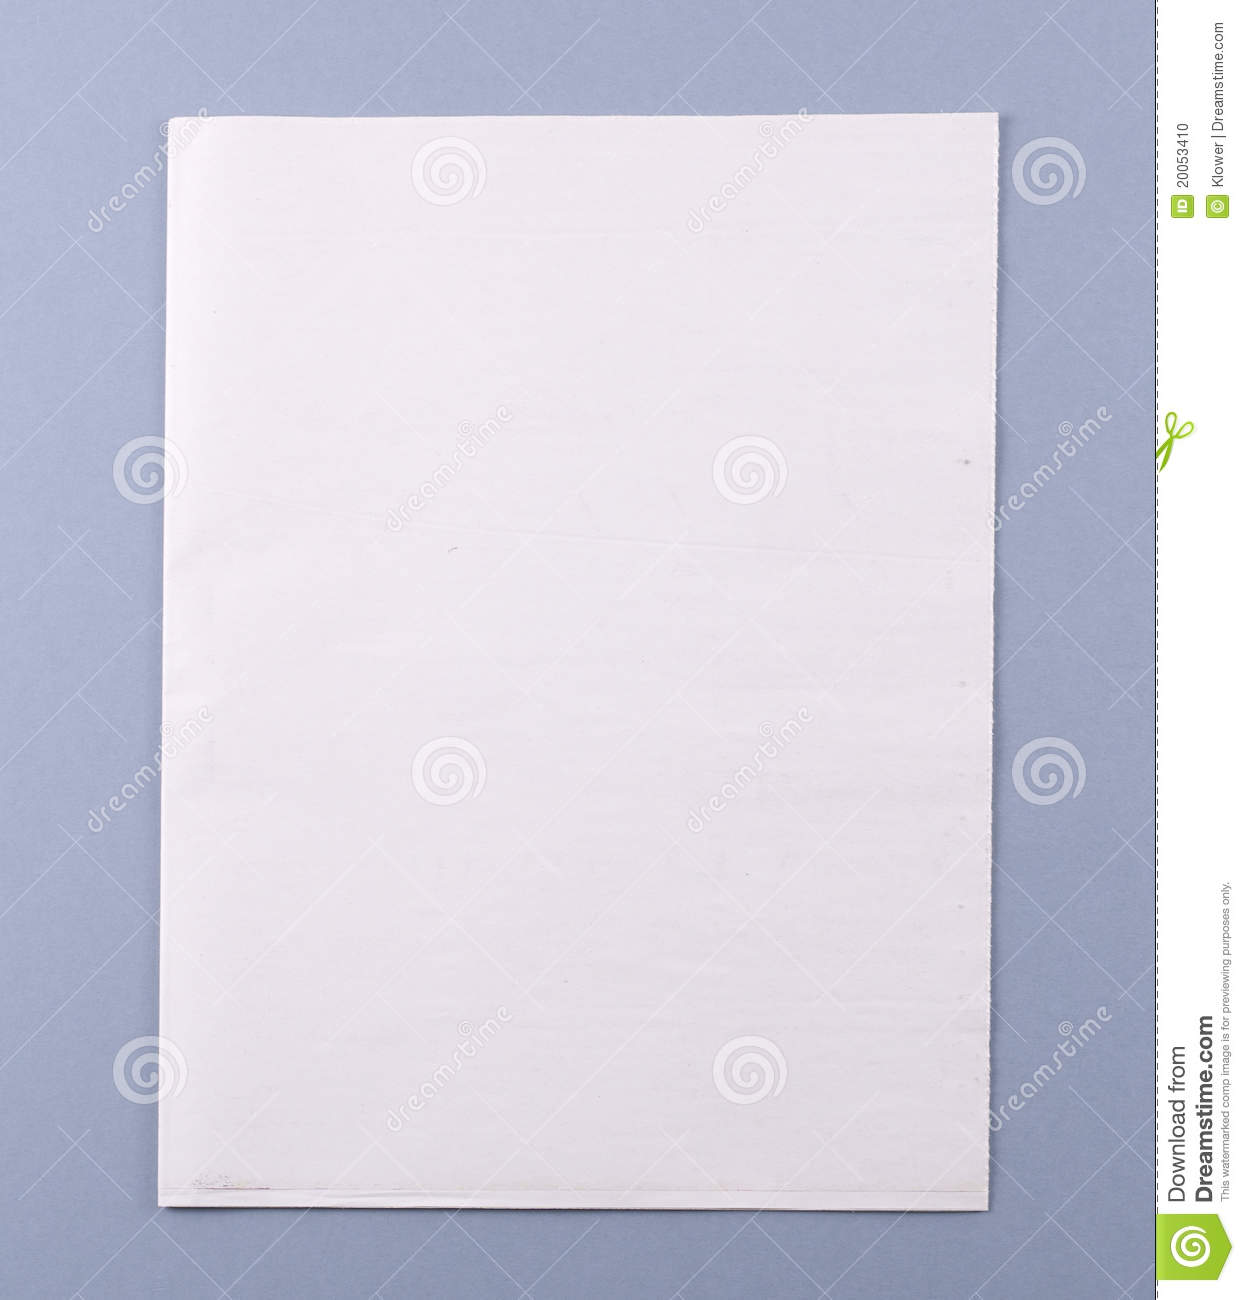 blank newspaper cover with clipping path stock photo